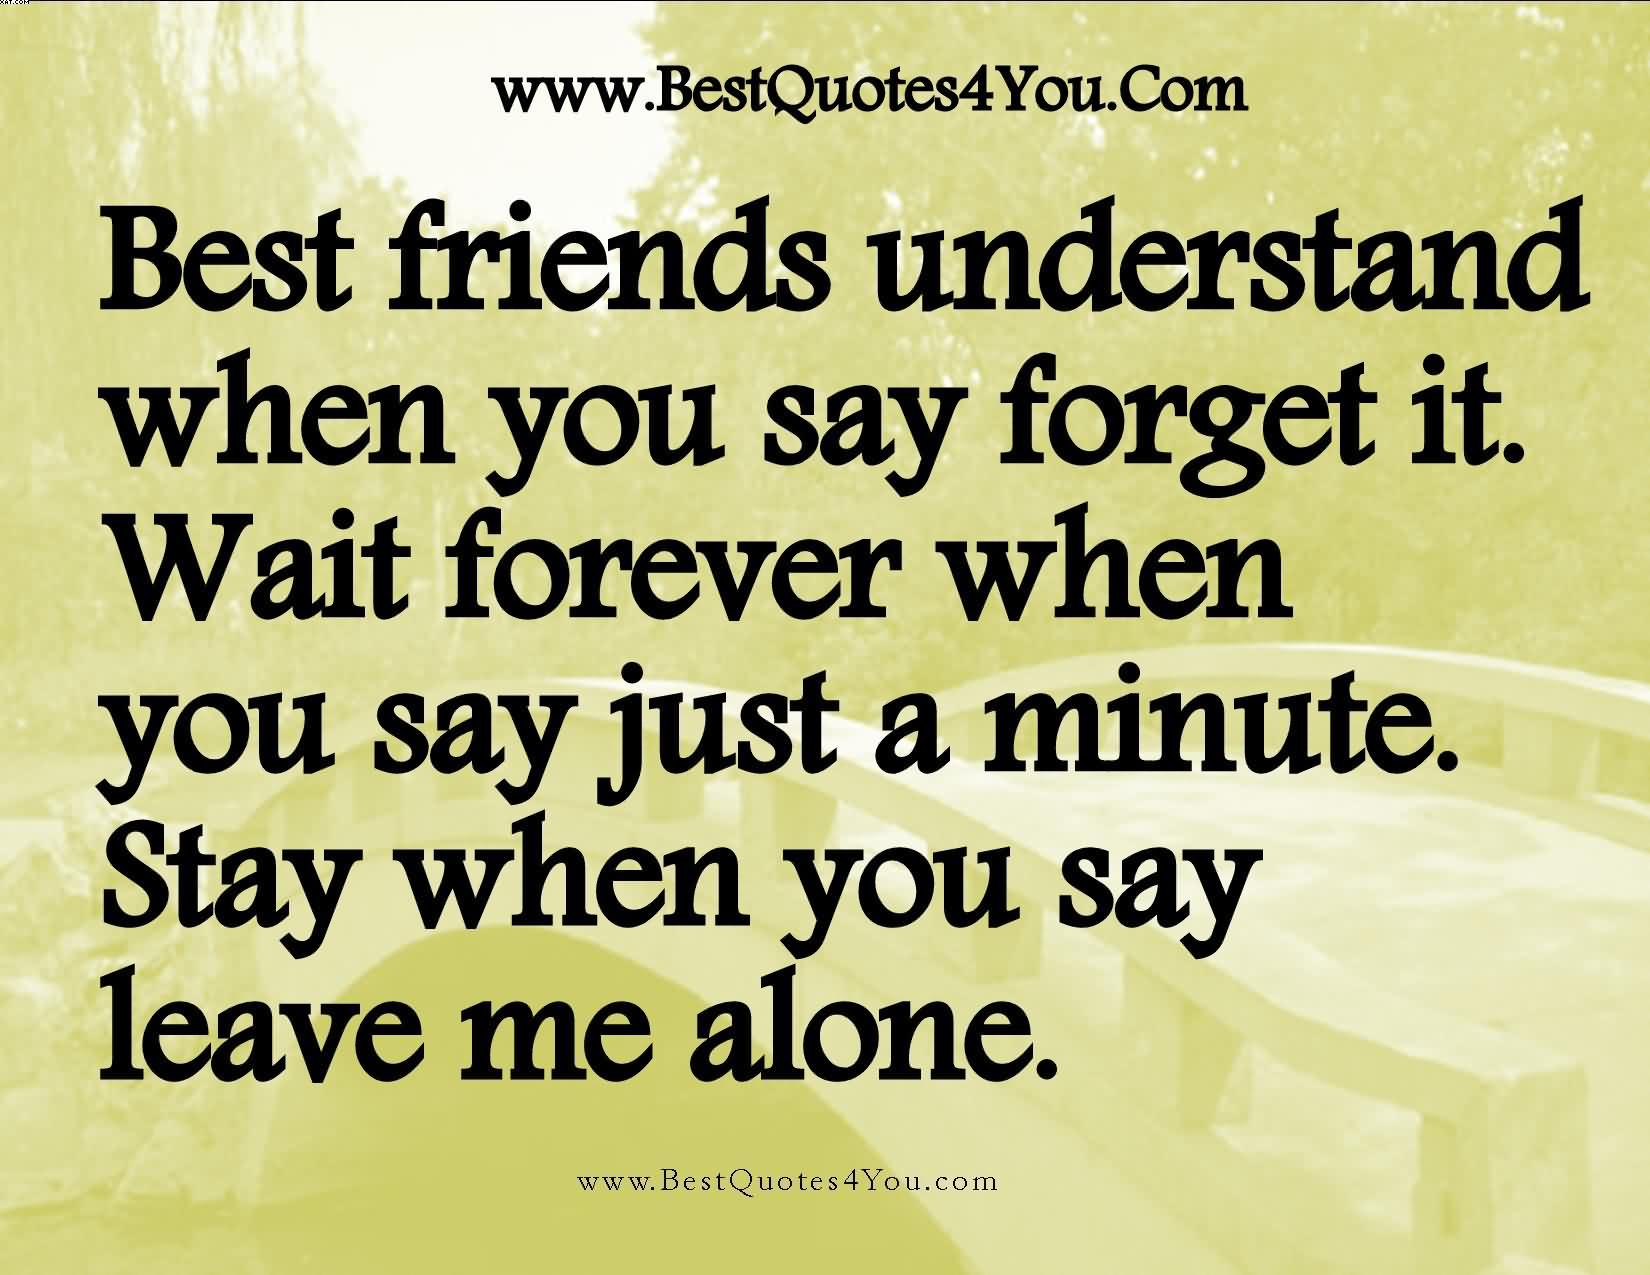 Friends Quotes: Alone Quotes Pictures And Alone Quotes Images With Message